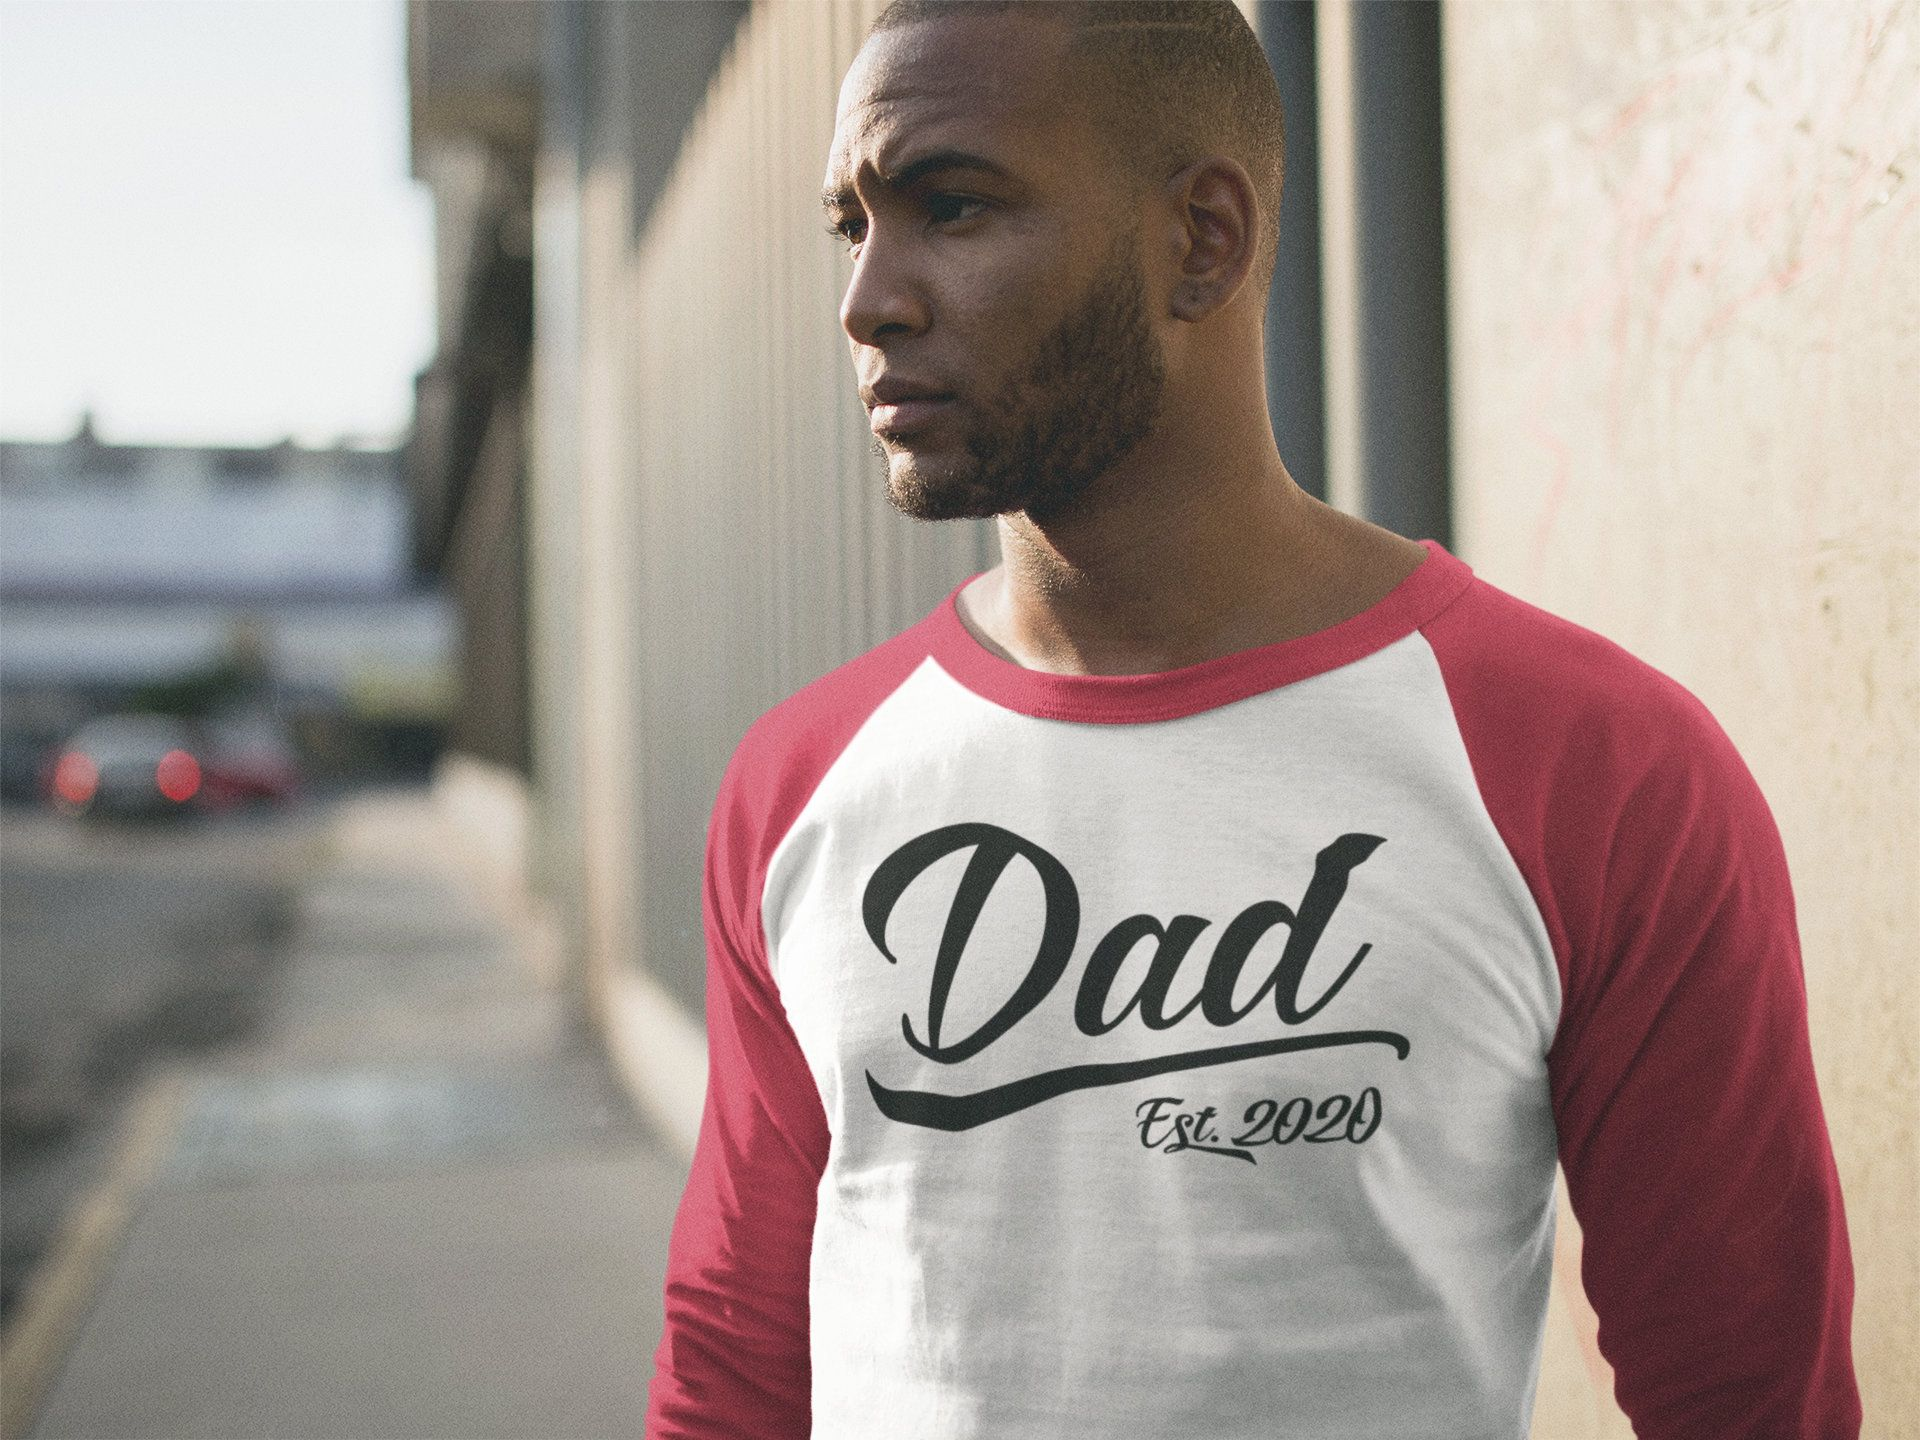 7a9b13cf Men's Dad Gift EST. 2020 T-Shirt New Baby Reveal Idea Gift Father's Day